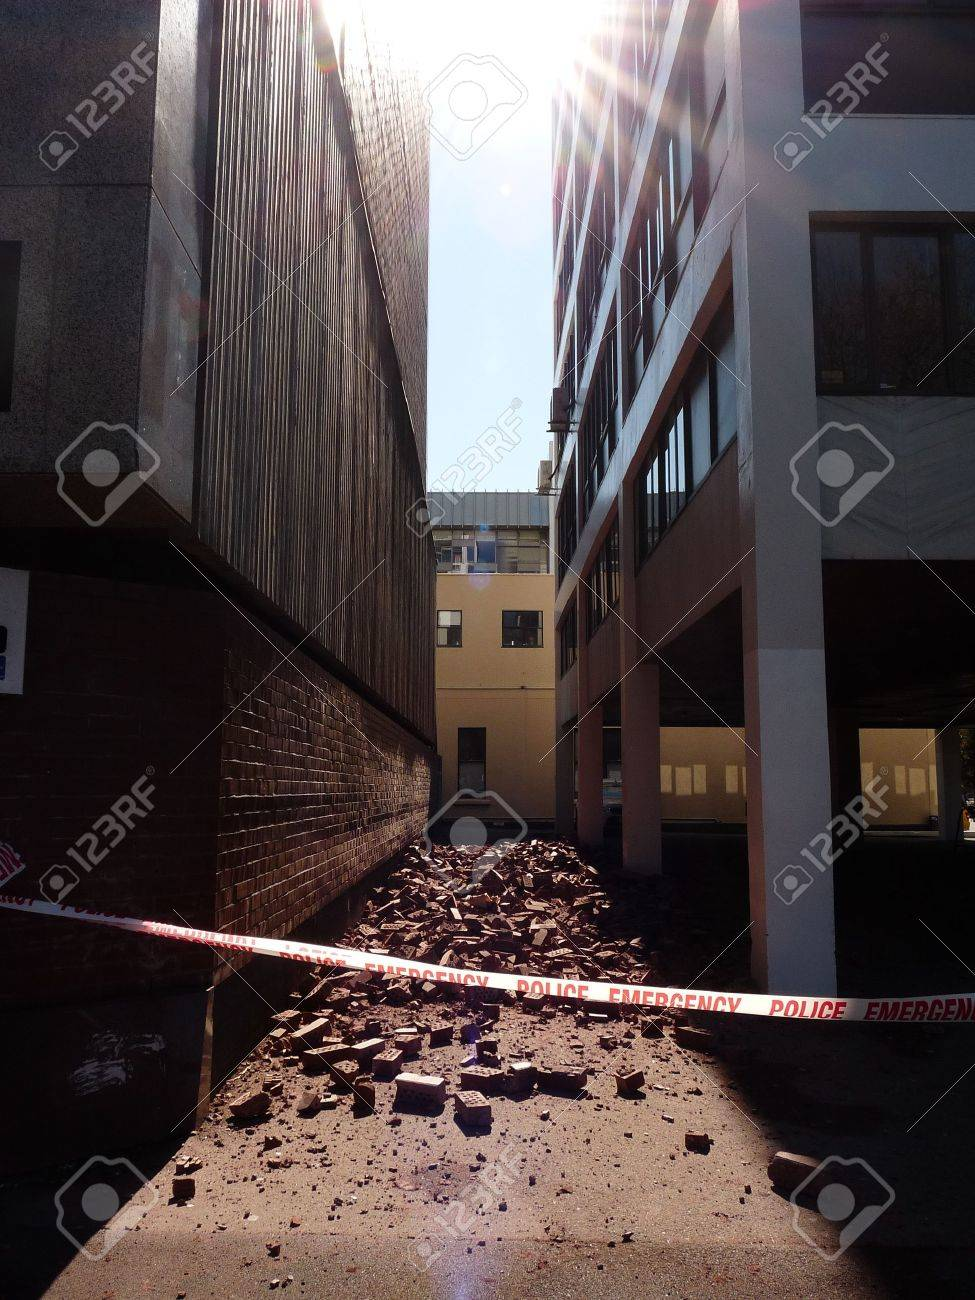 Christchurch, New Zealand, September 4 2010: Rubble in alley from Earthquake Stock Photo - 7738827